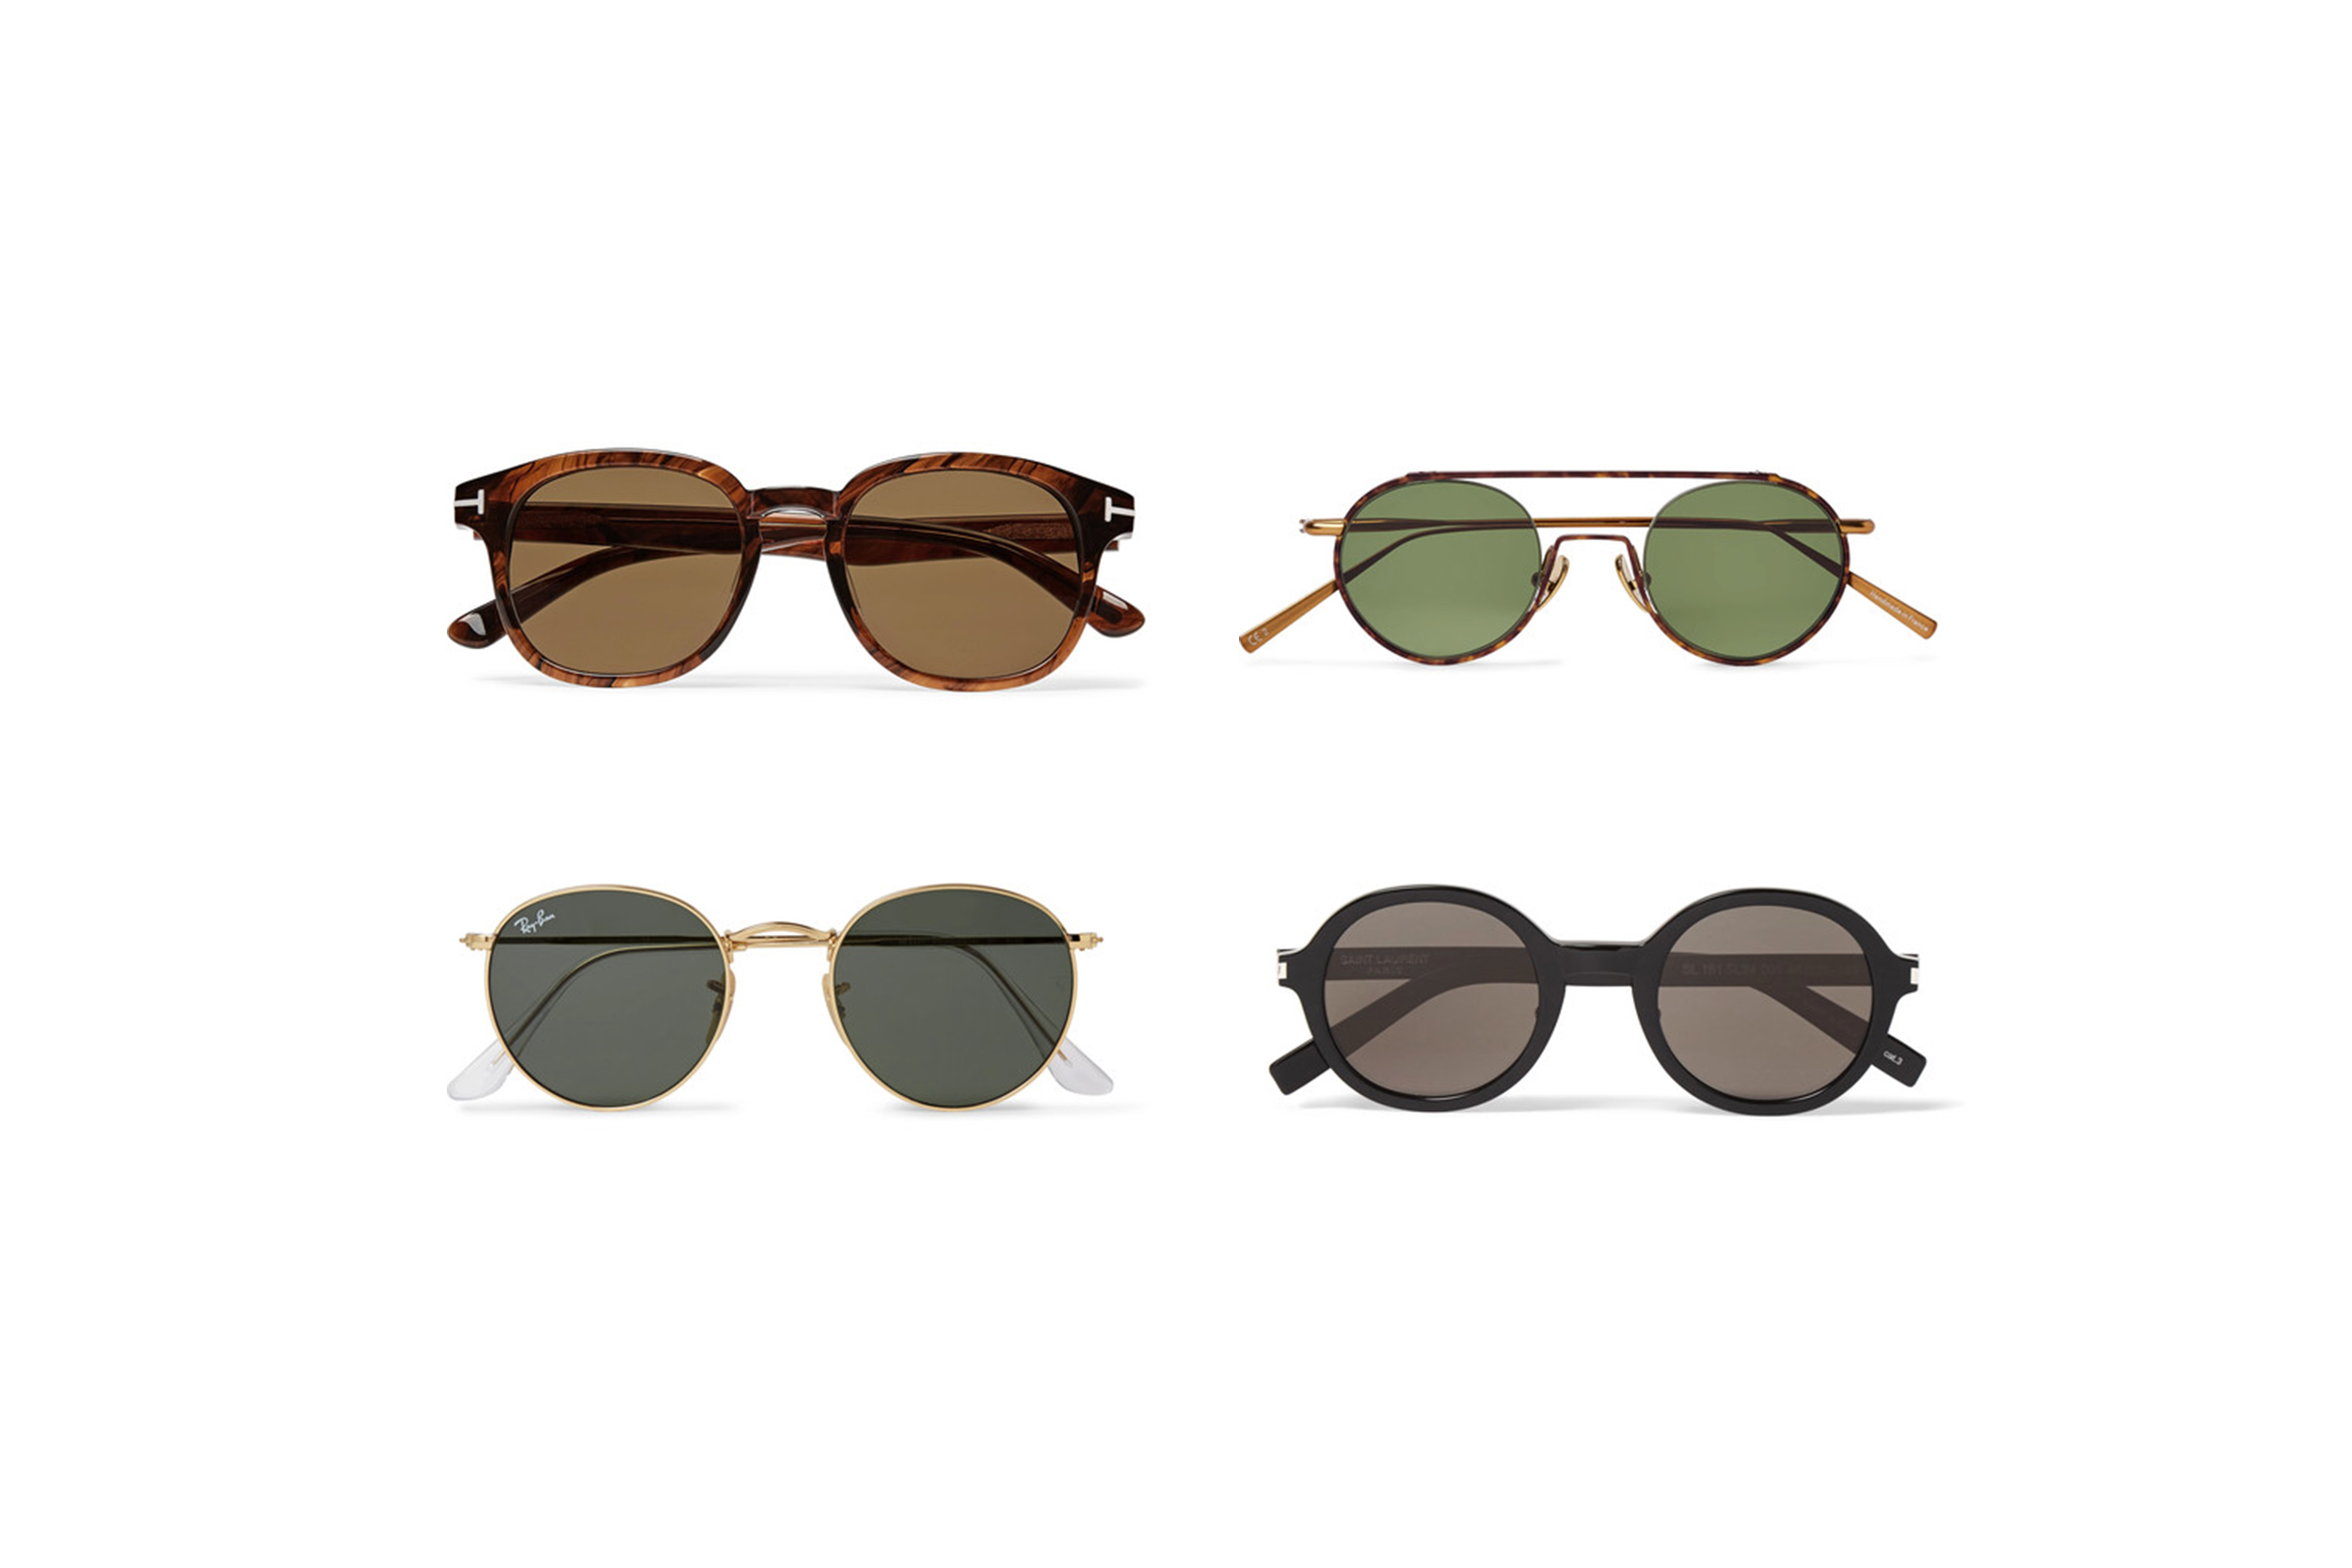 Quality Sunglasses  invest in a pair of quality sunglasses this year marcus troy